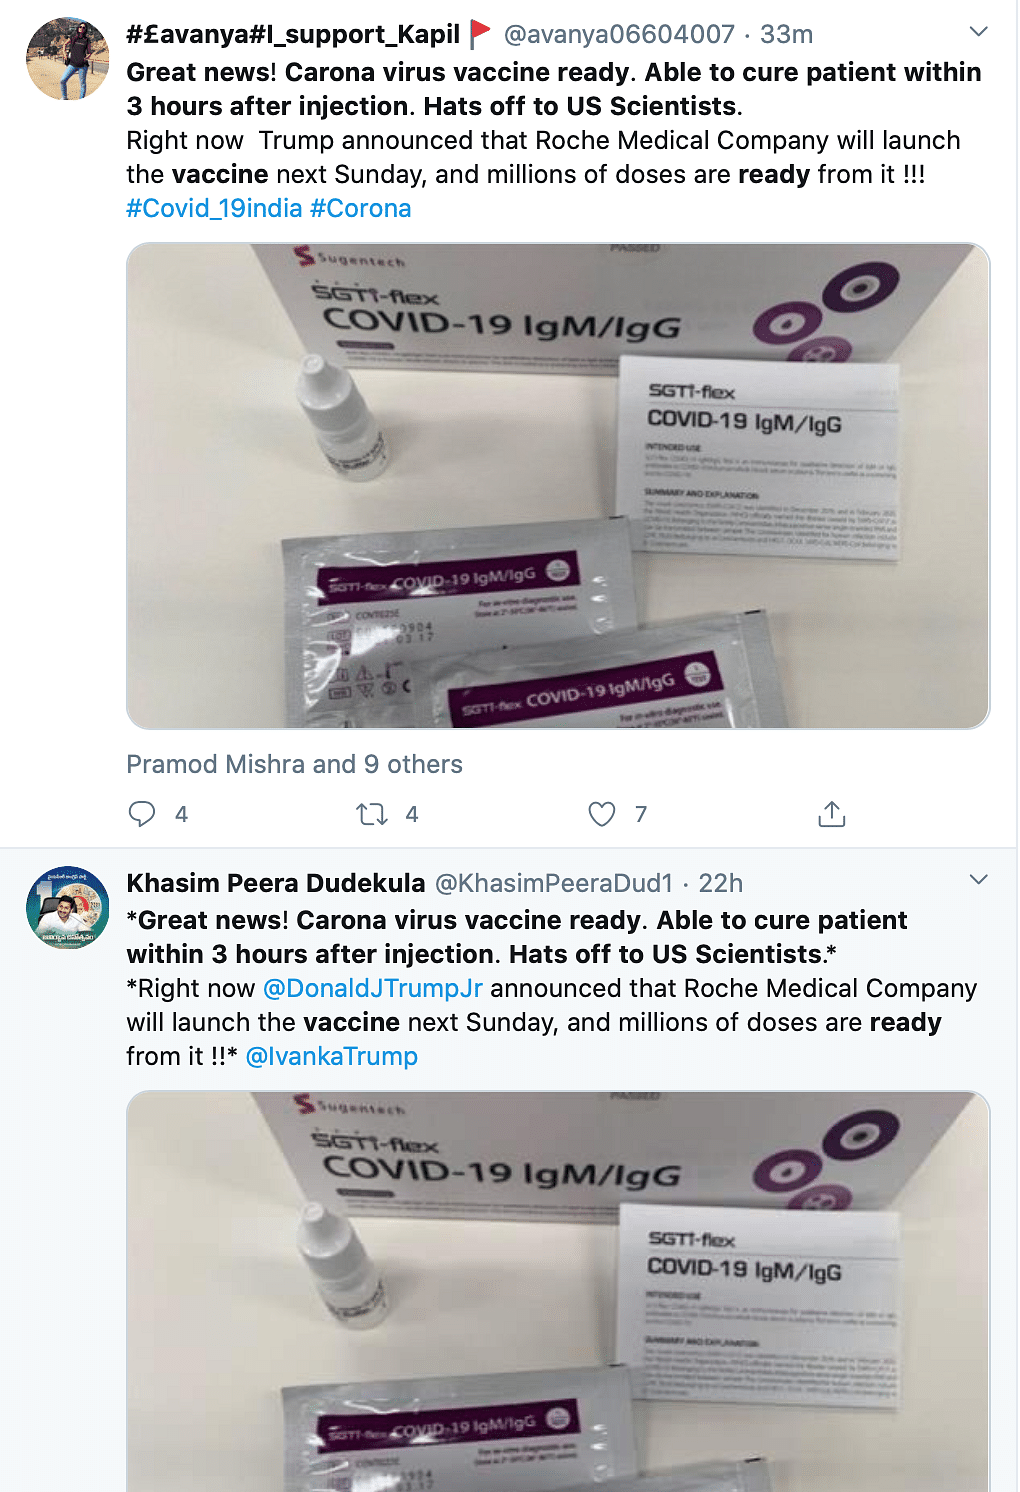 COVID-19 Vaccine Ready, Can Cure Patients in 3 Hours? Fake Alert!